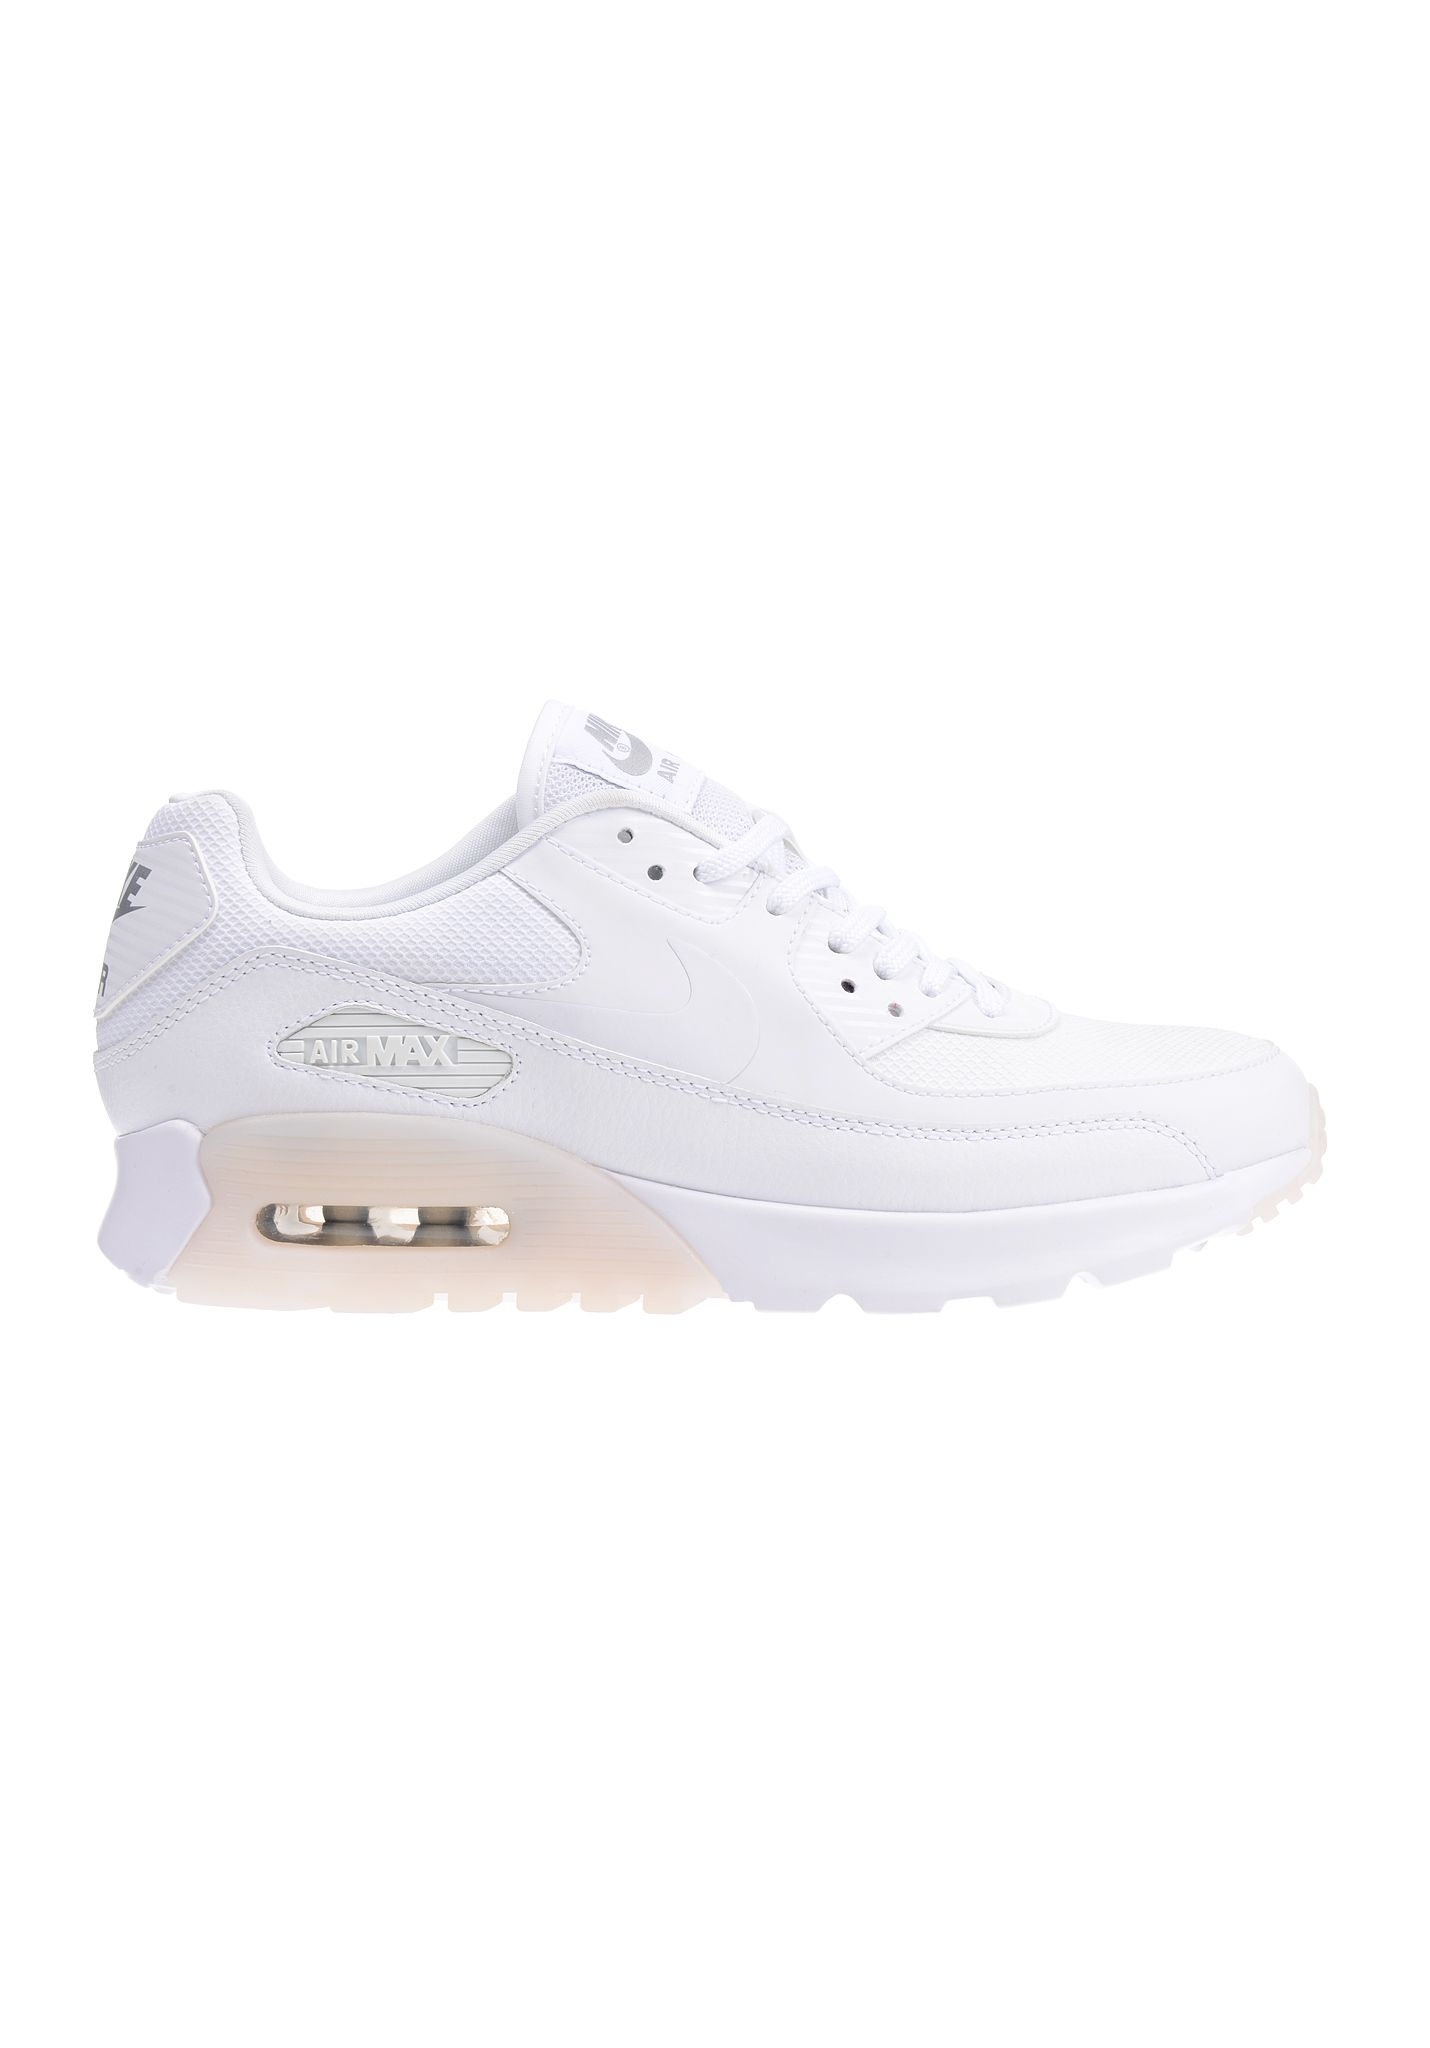 super popular 2835c eee77 ... NIKE SPORTSWEAR Air Max 90 Ultra Essential - Zapatillas para Mujeres -  Blanco - Planet Sports ... 724981 100 ...